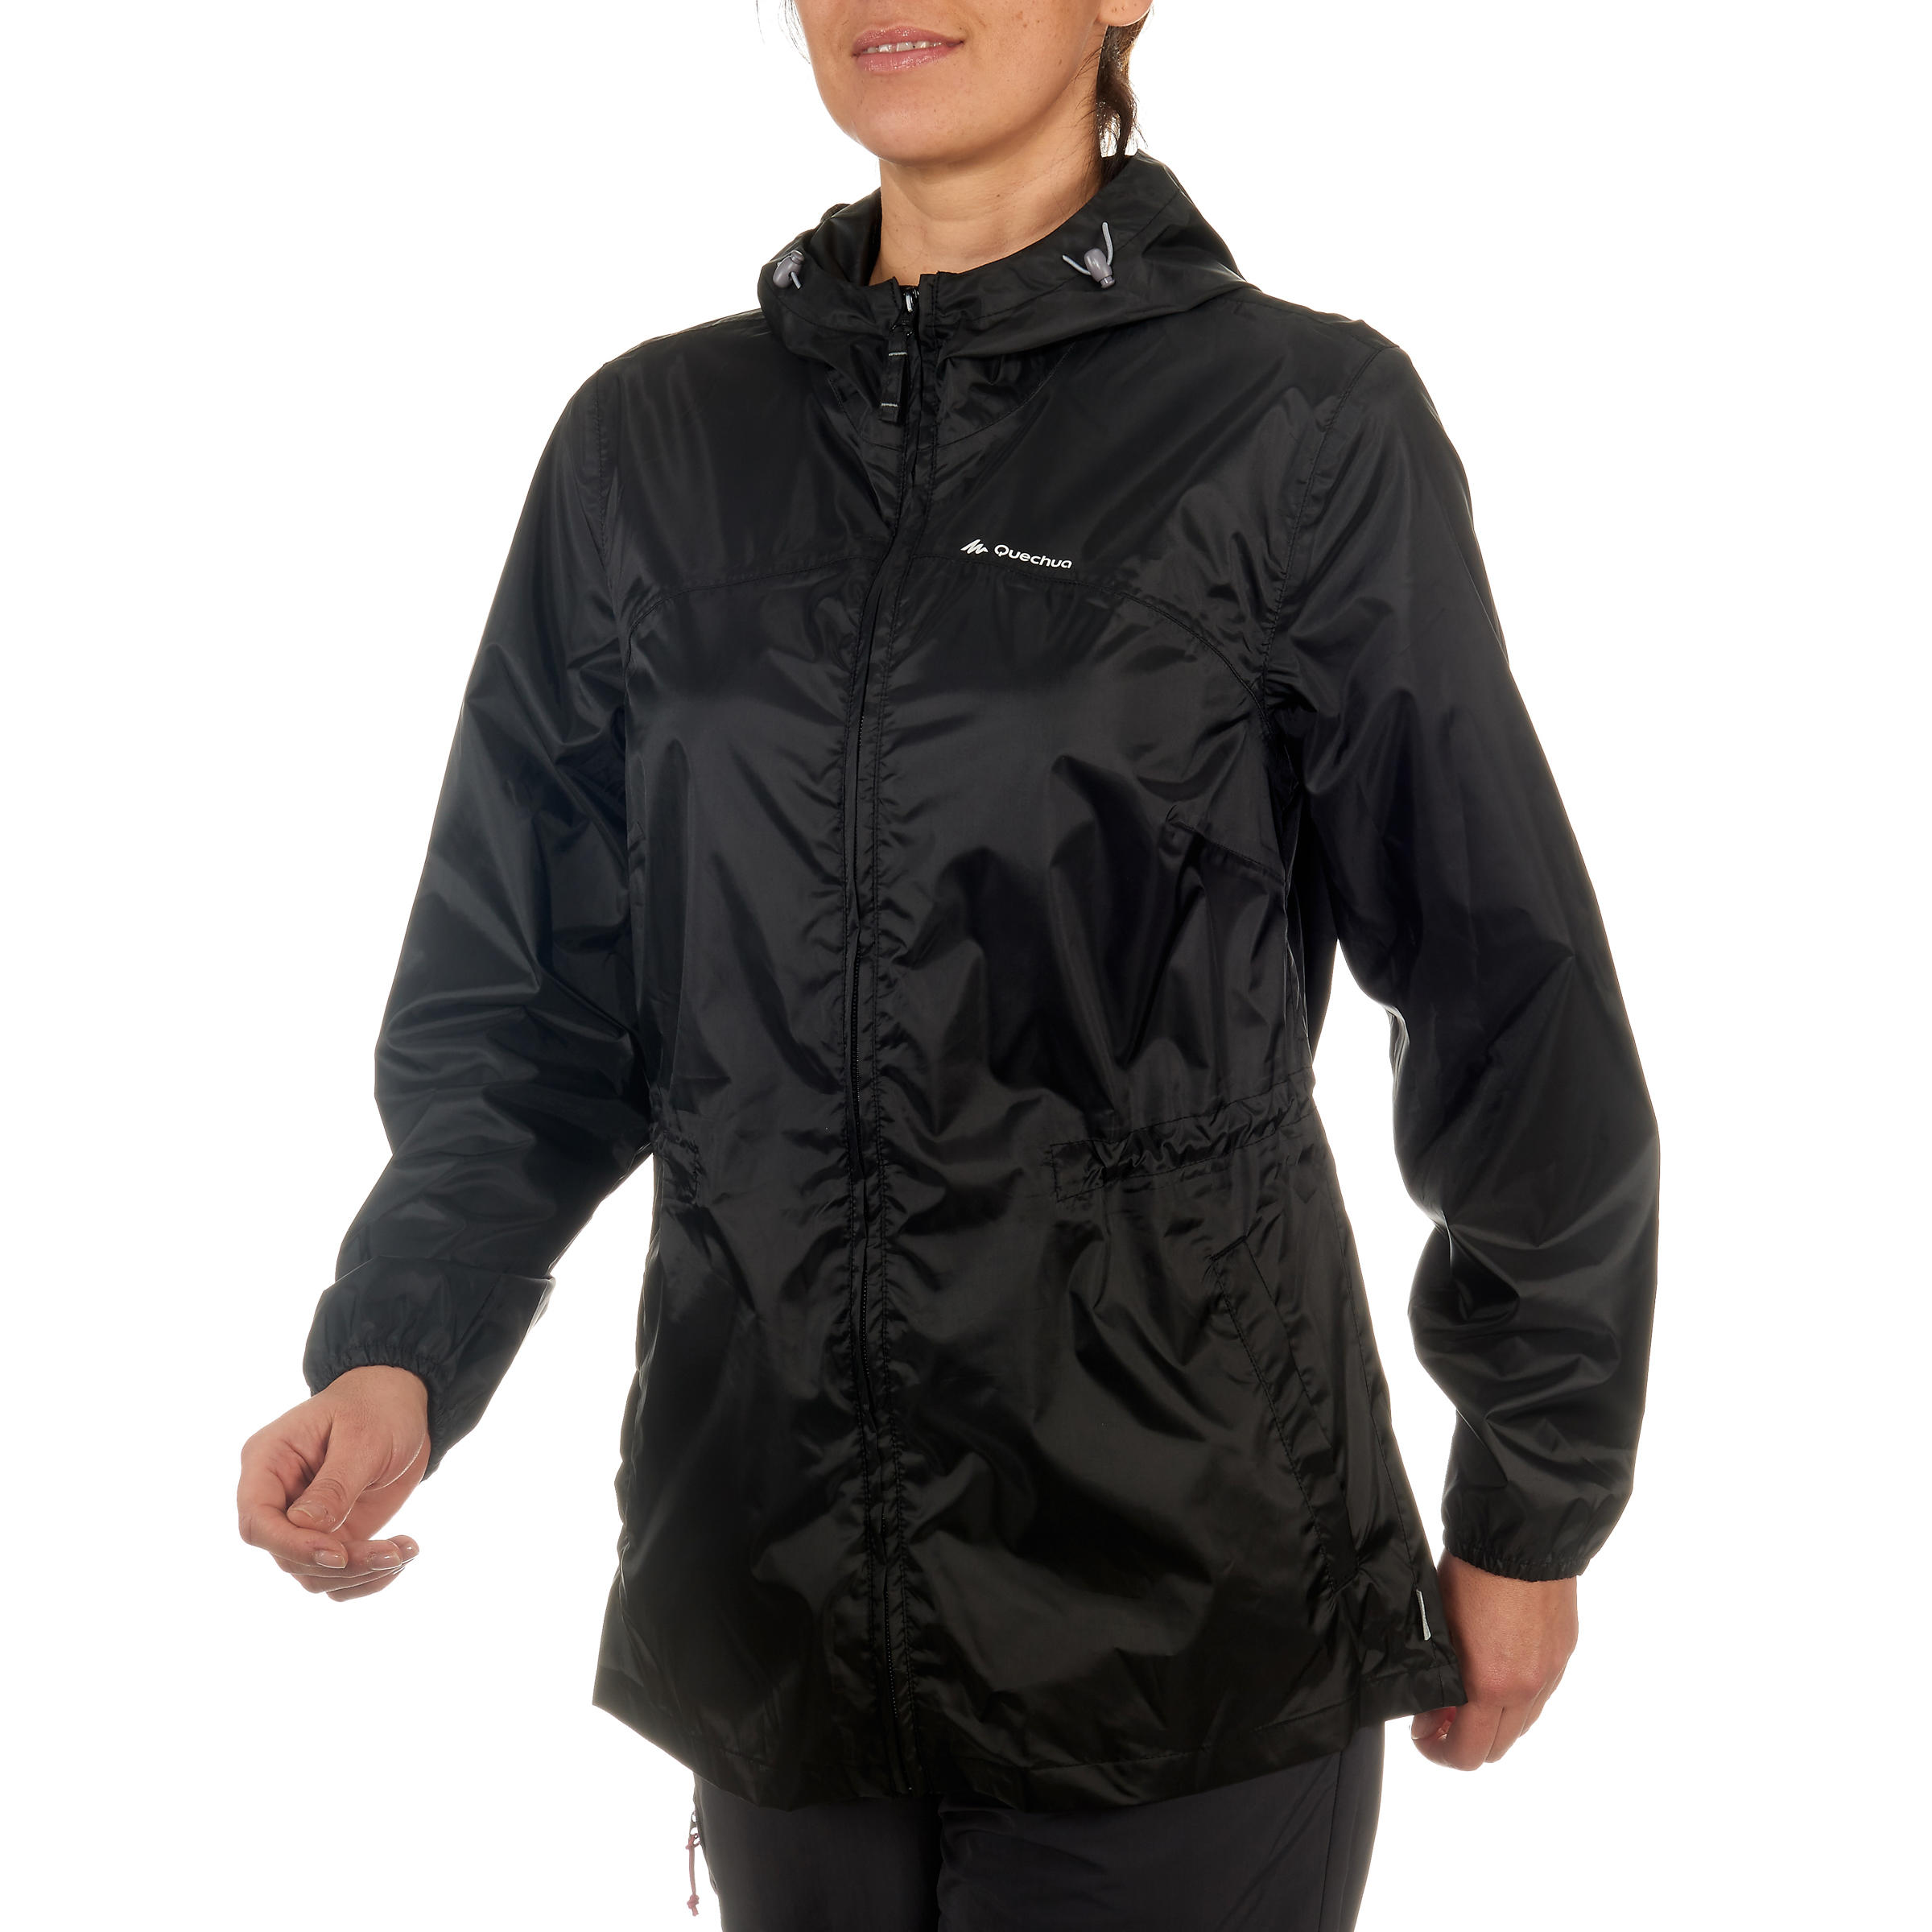 Raincut Zip, women's black waterproof nature hiking jacket